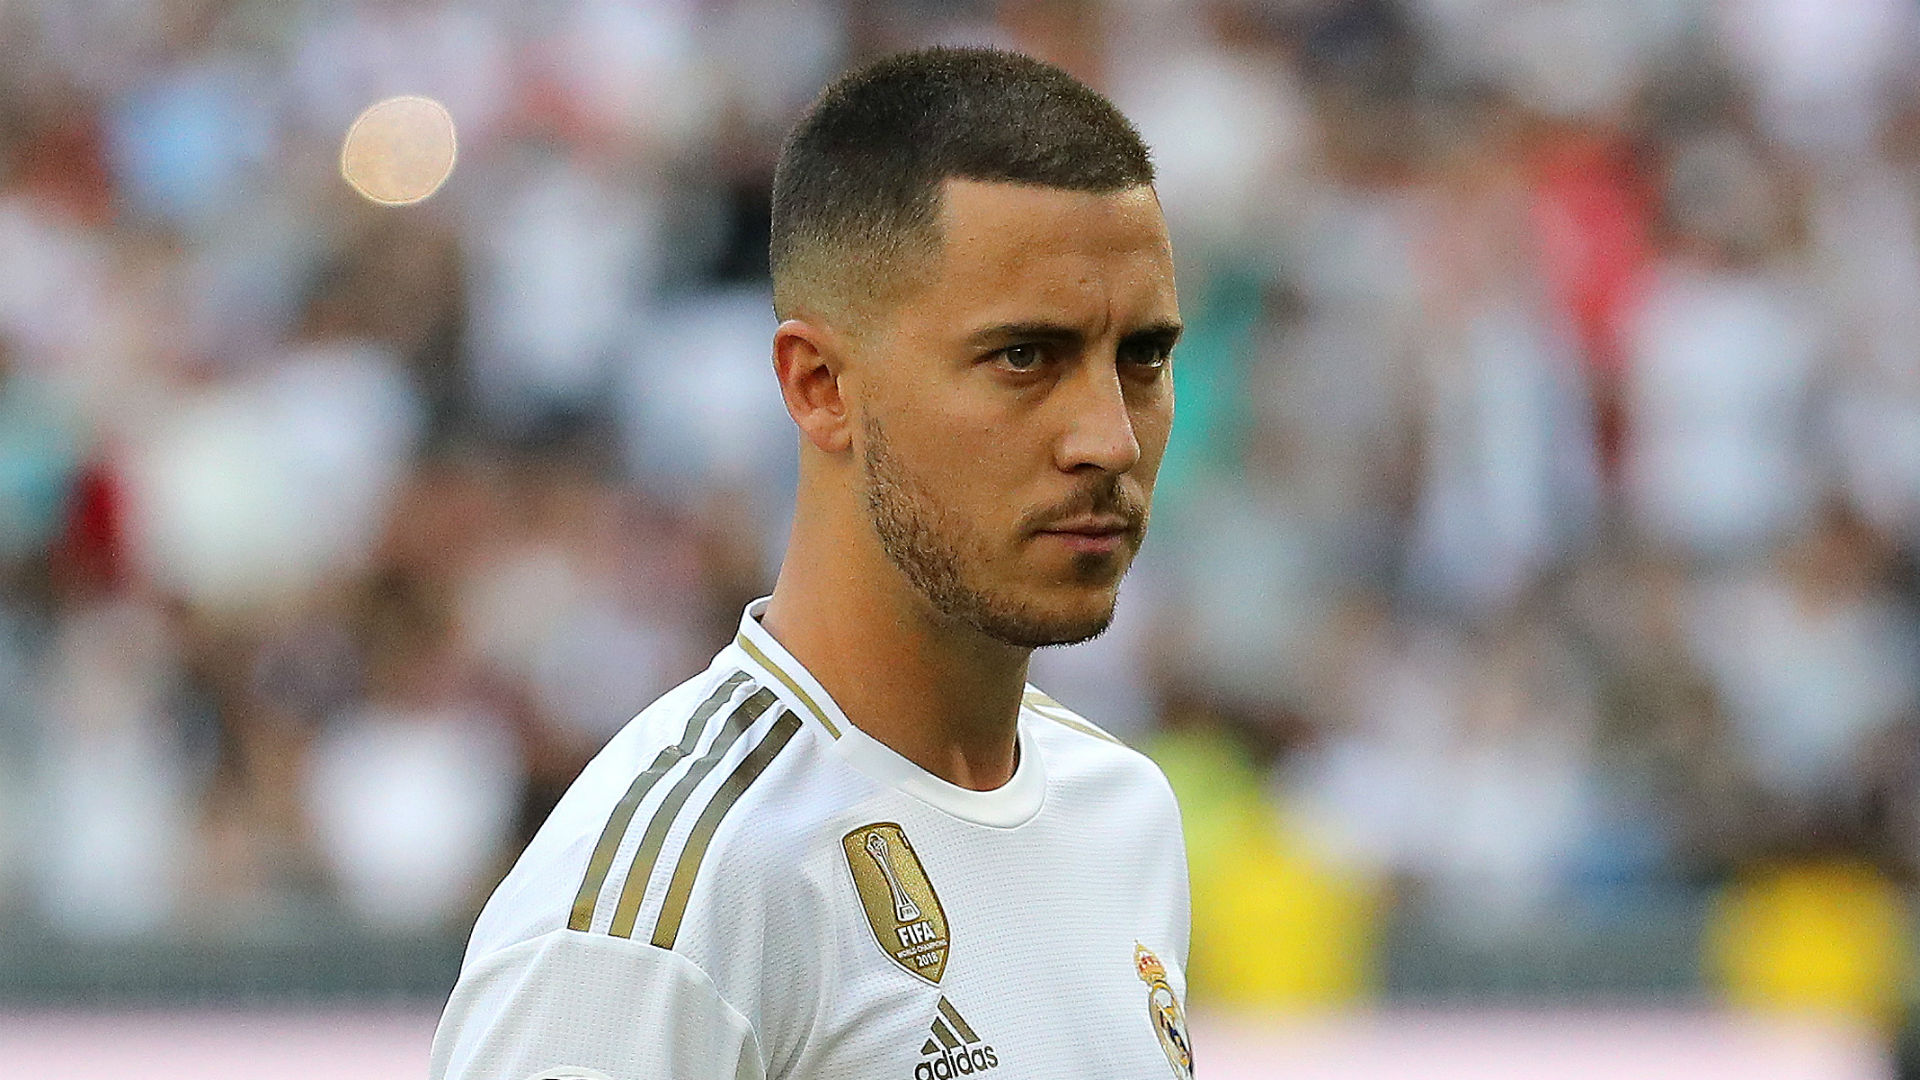 Hazard ready to play from the start against PSG - Real Madrid coach Zidane